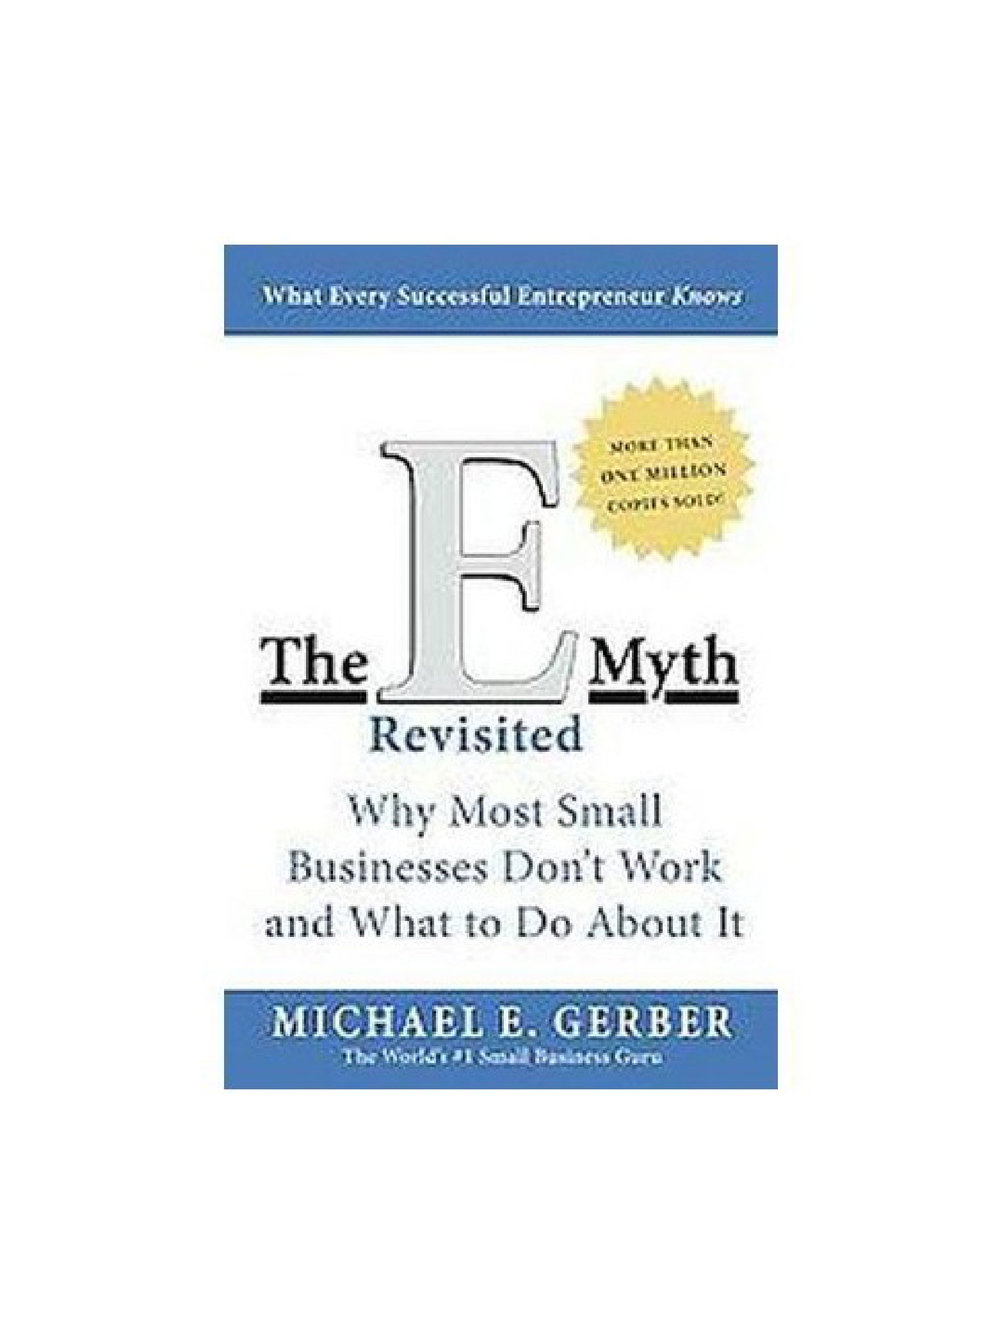 THE E MYTH REVISiTED buy now